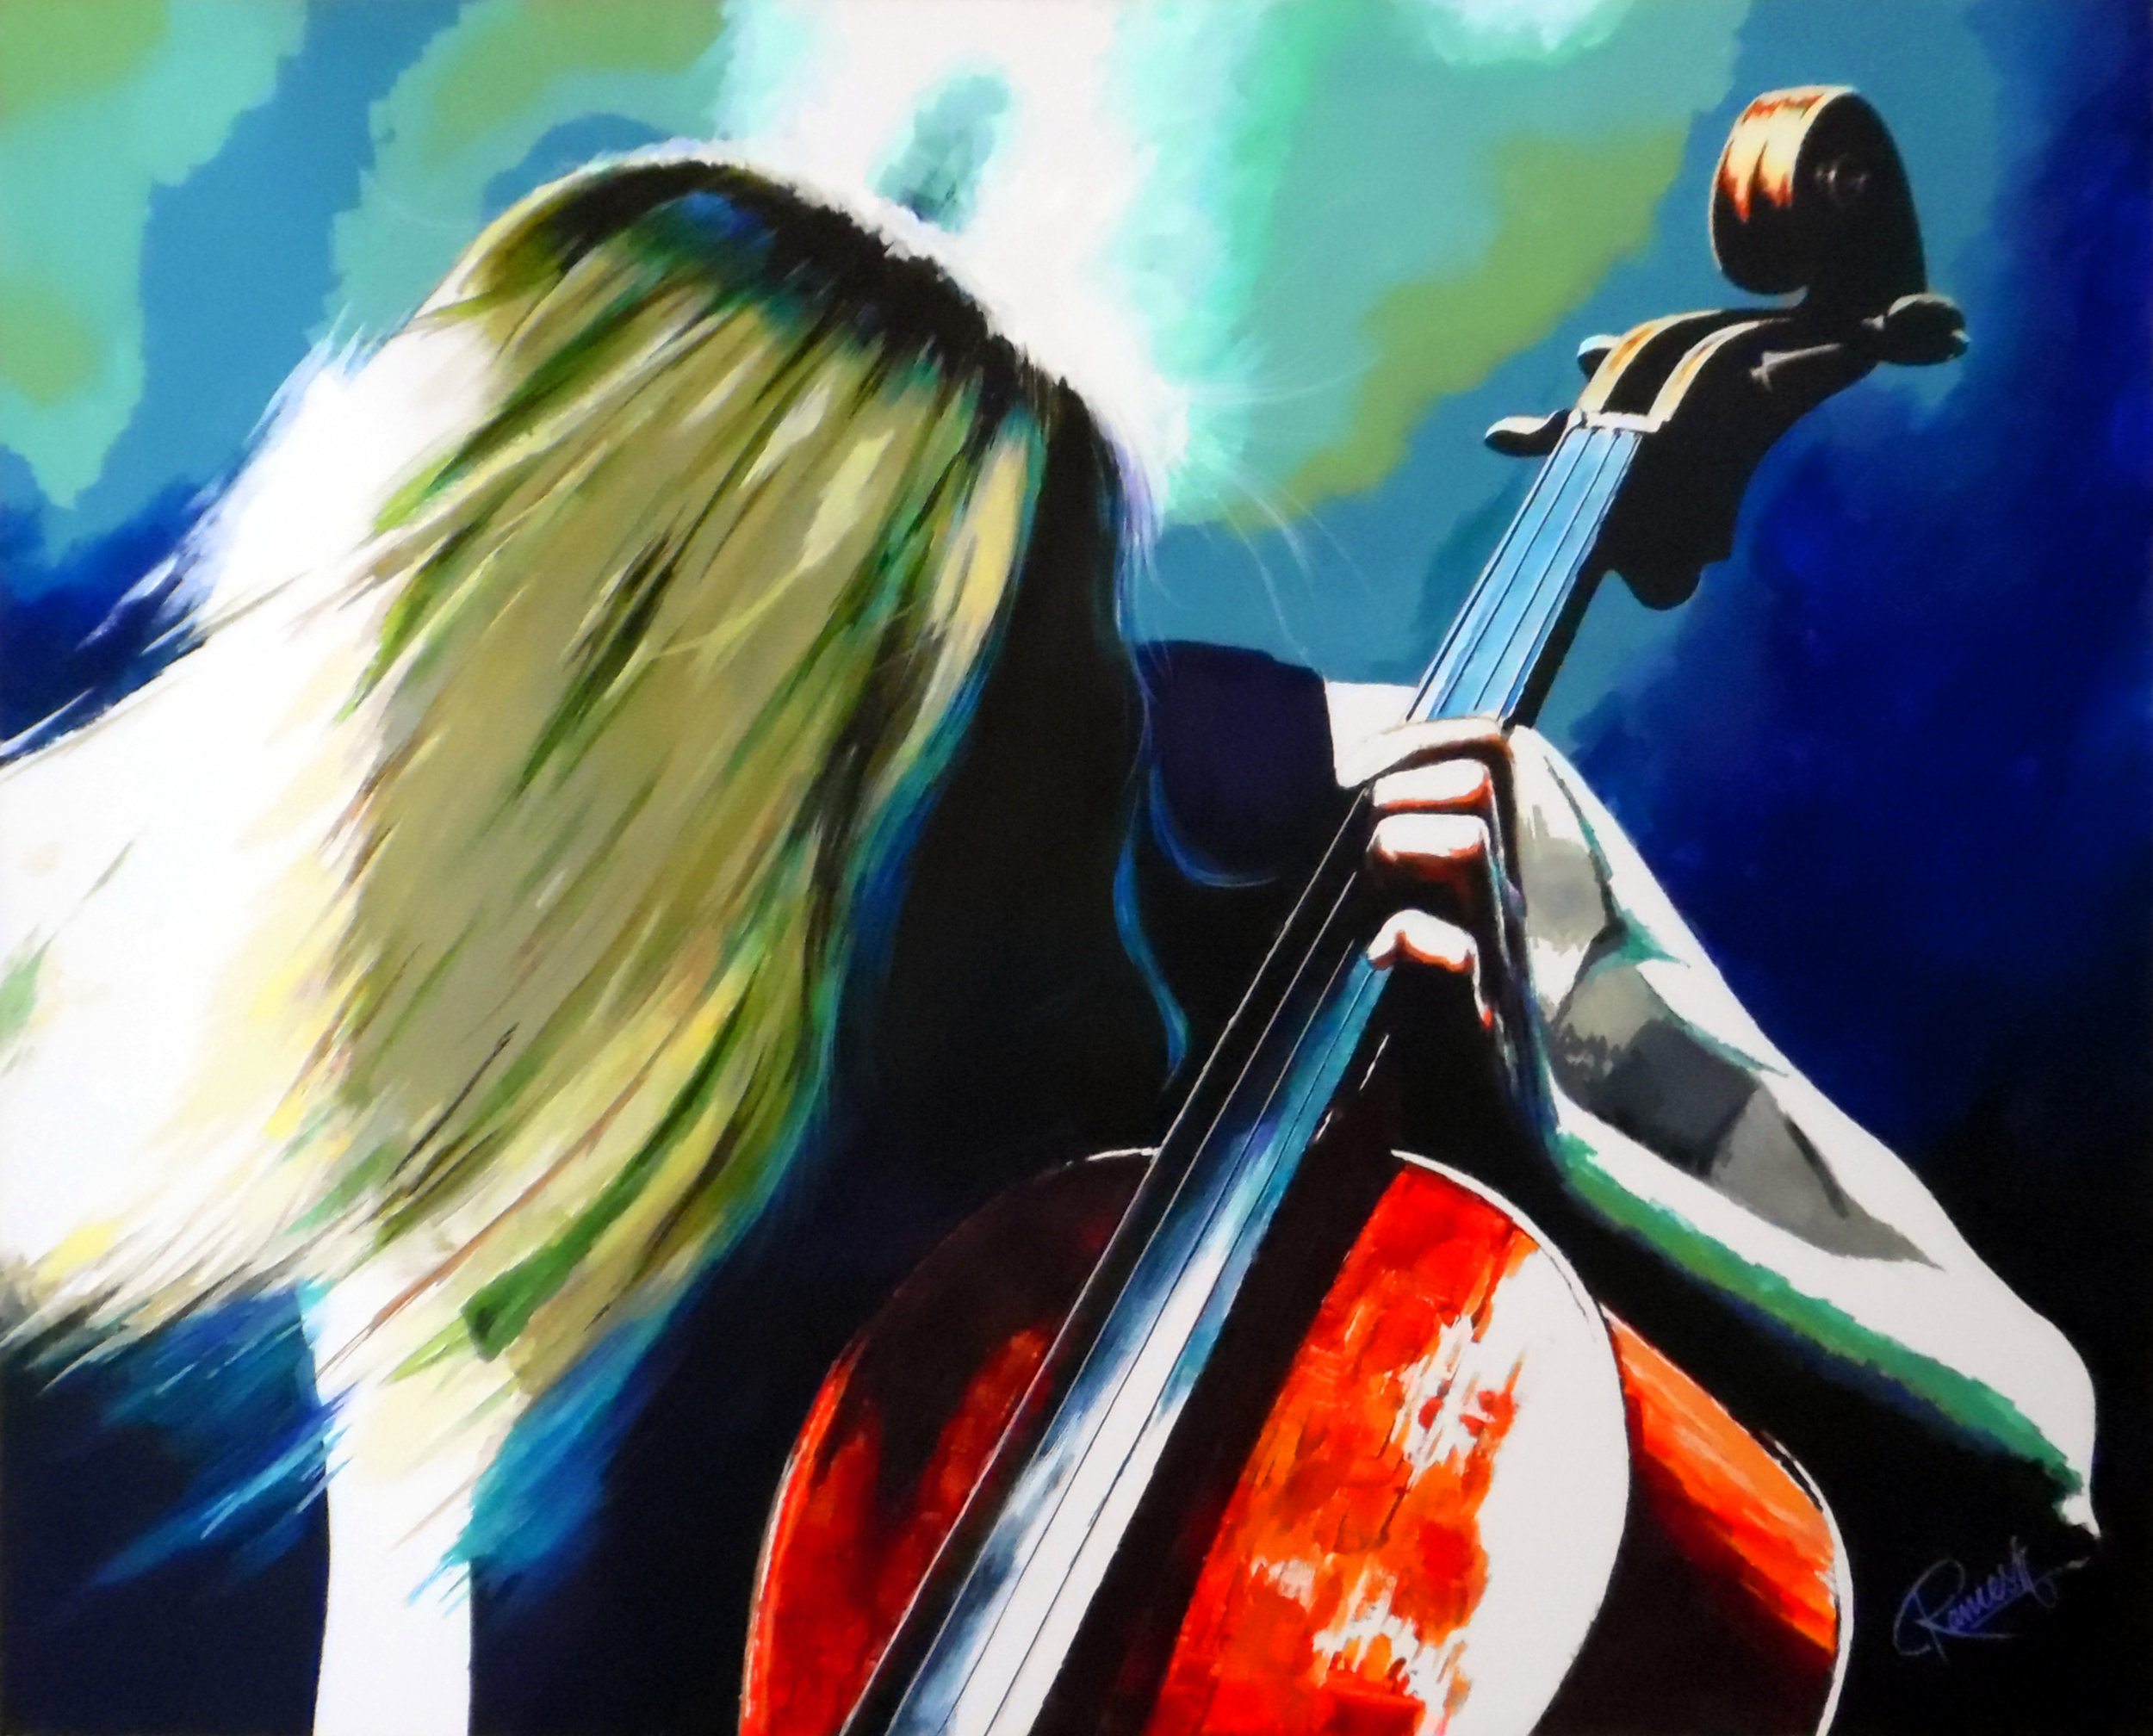 Cello_playing_women_30X24_inches.jpg